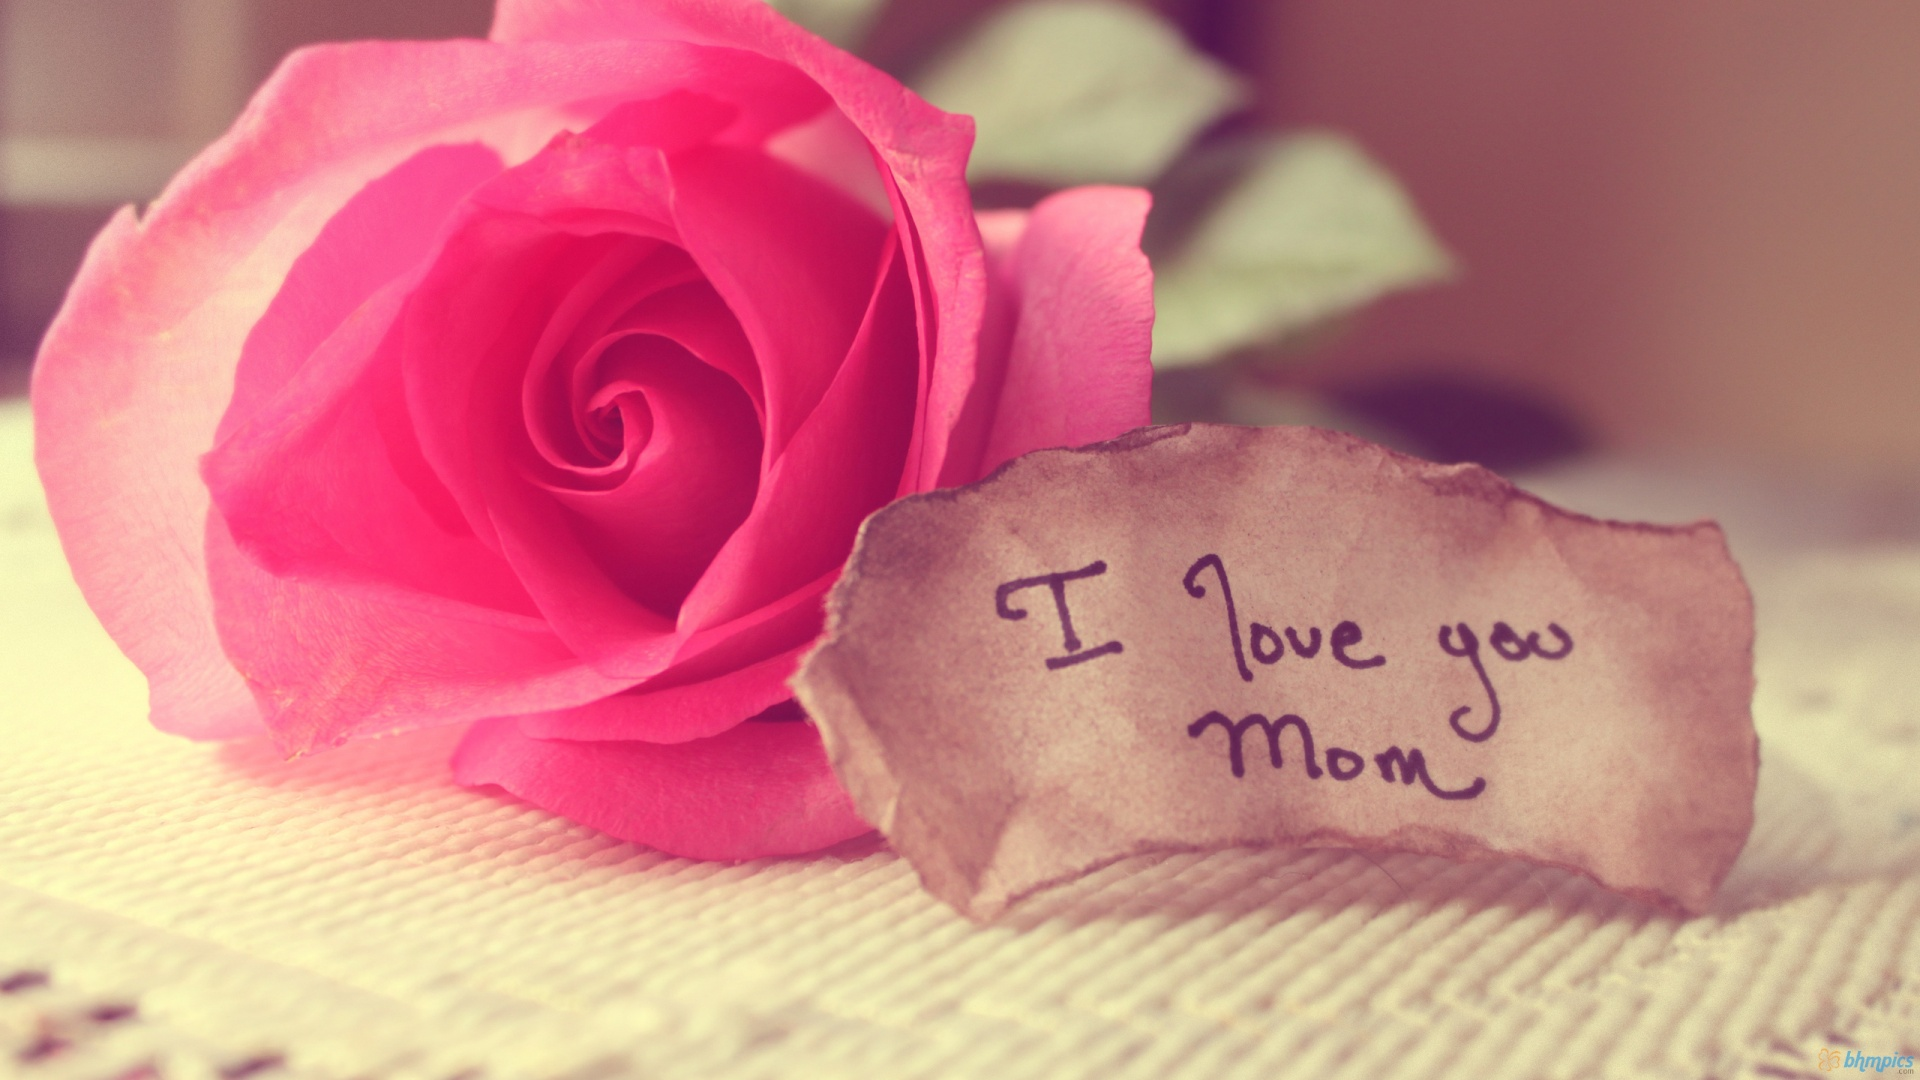 Love Mom Wallpaper